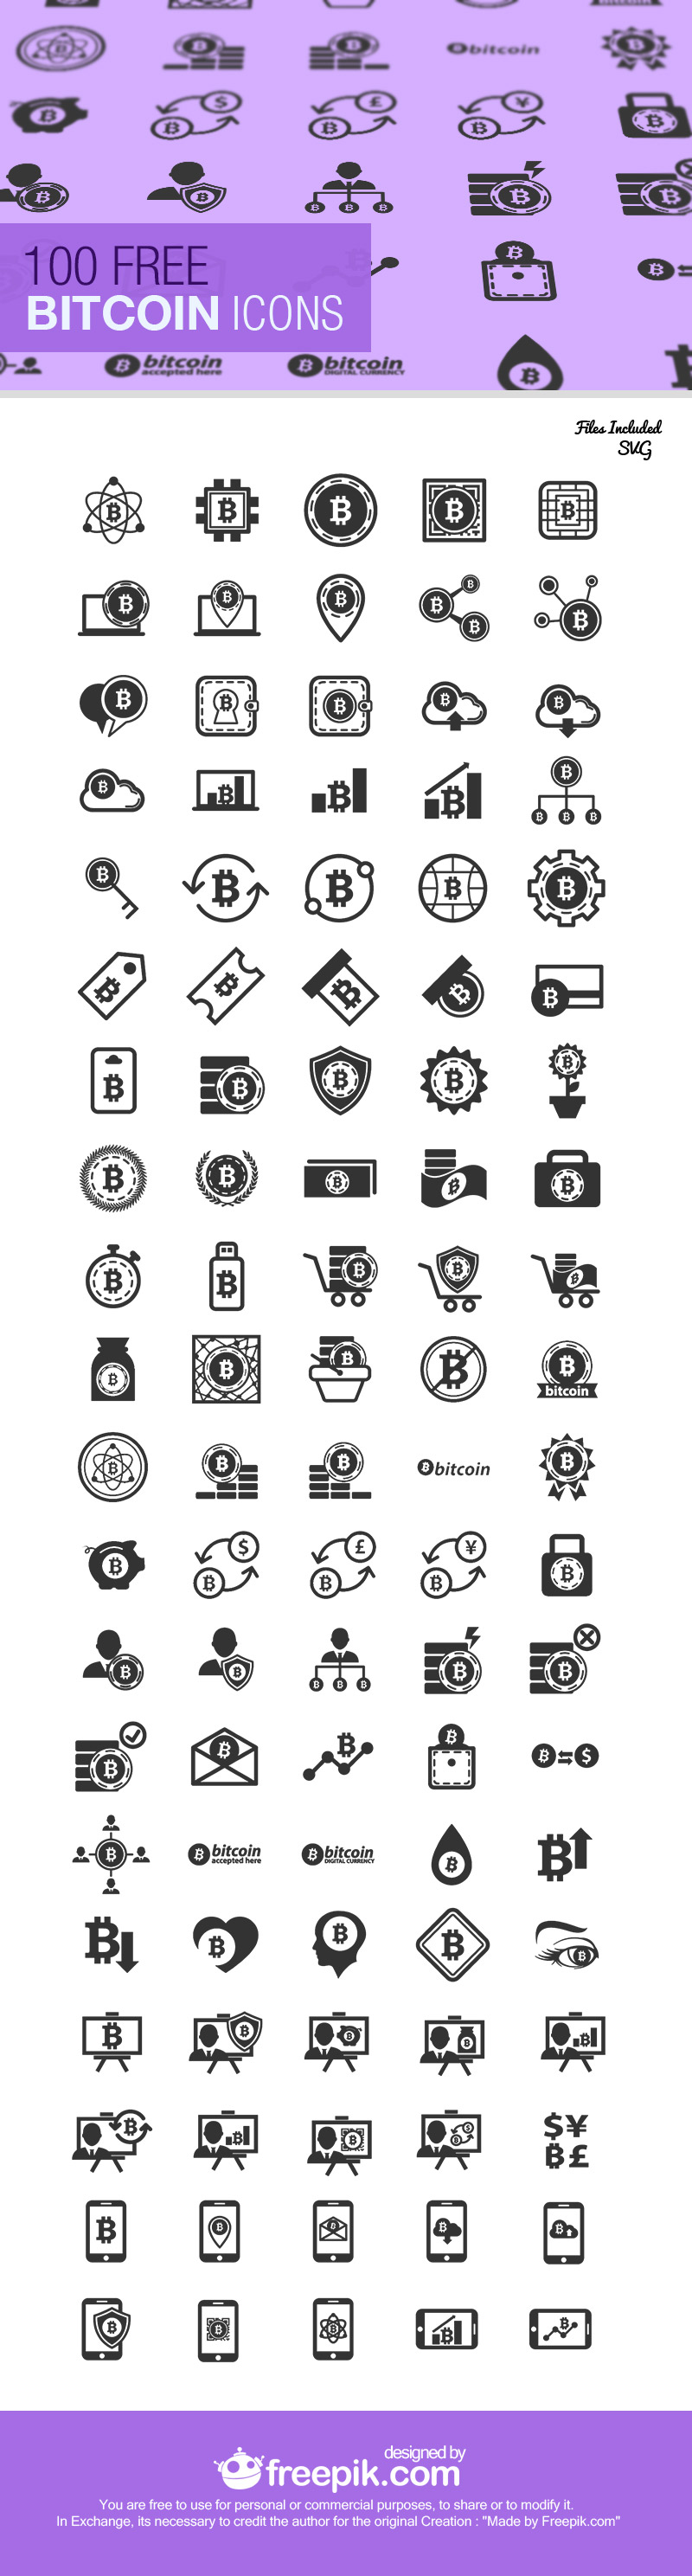 10 Virtual Currency Digital Currency Graphic Design For Free